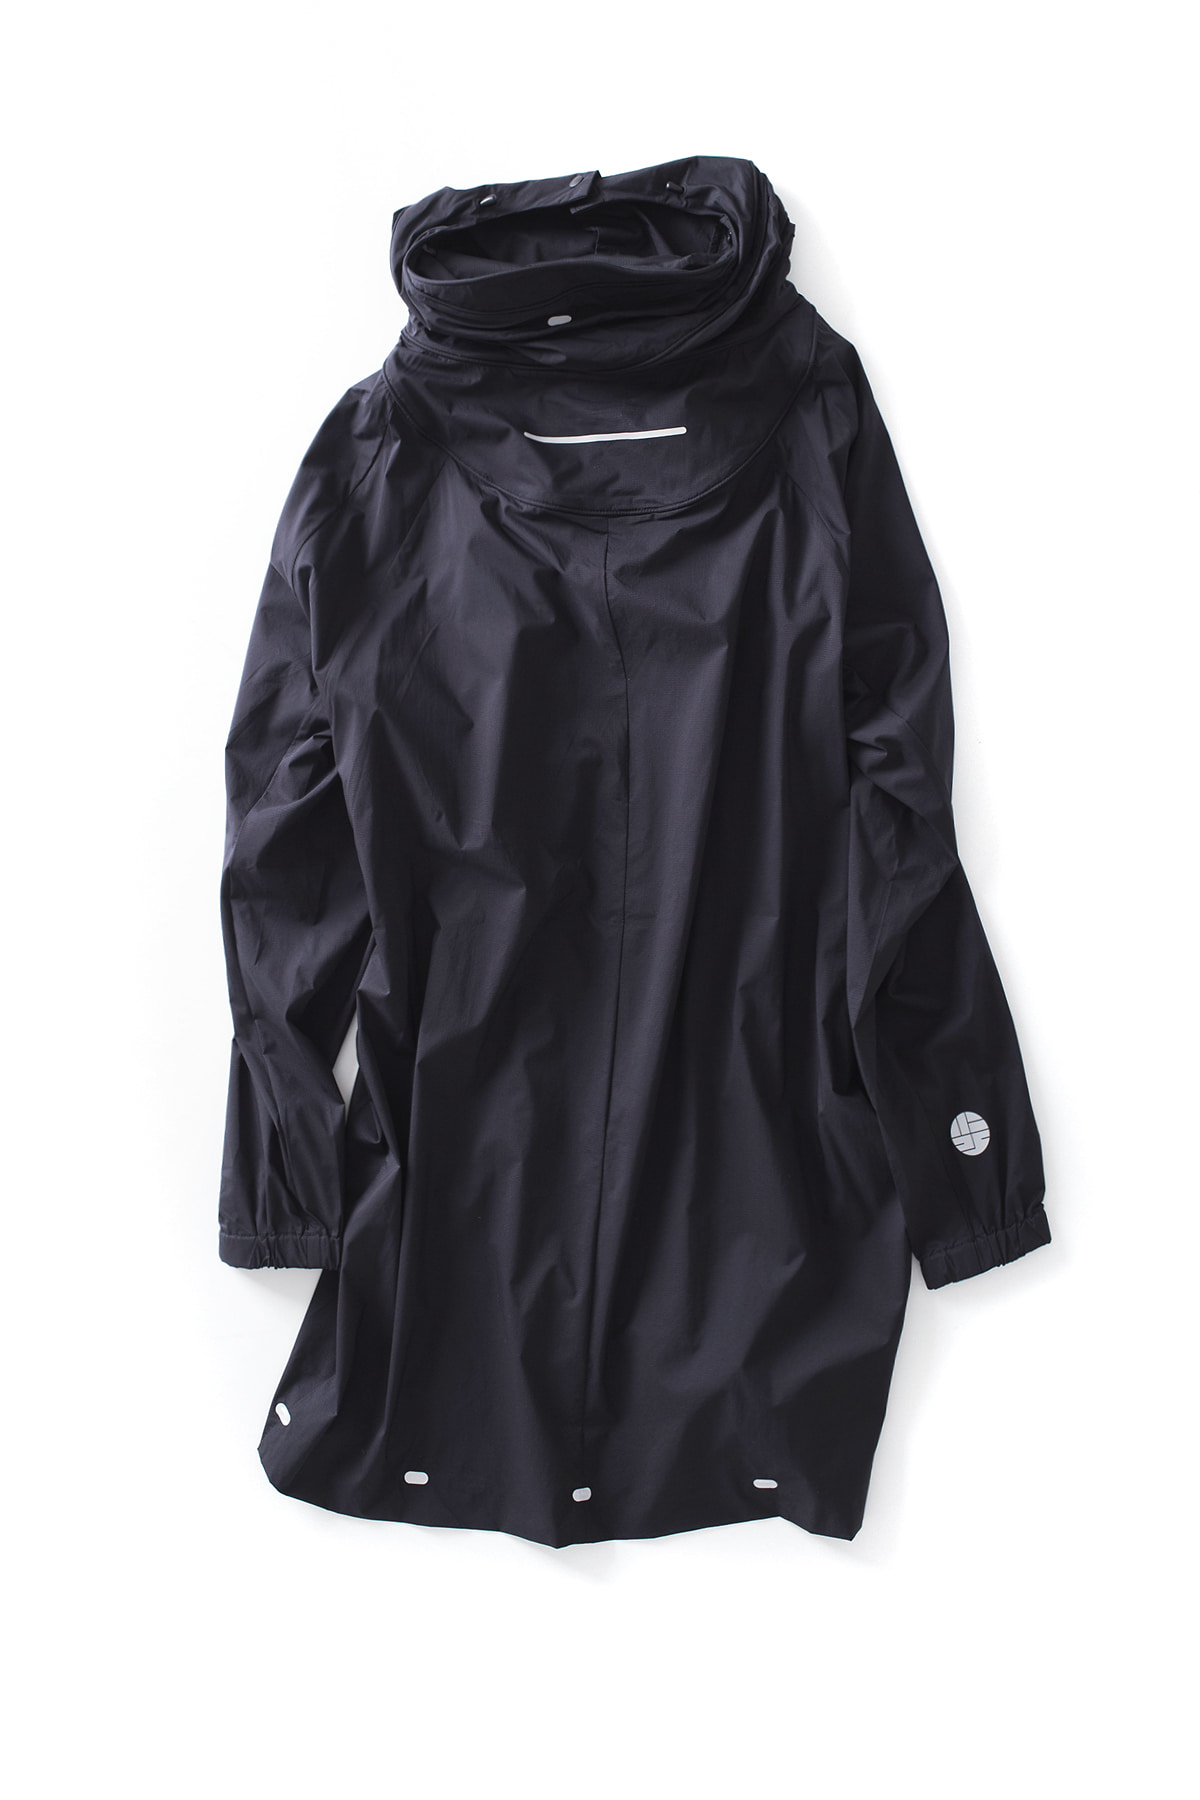 alk phenix : Dome Coat /EPIC (Black)